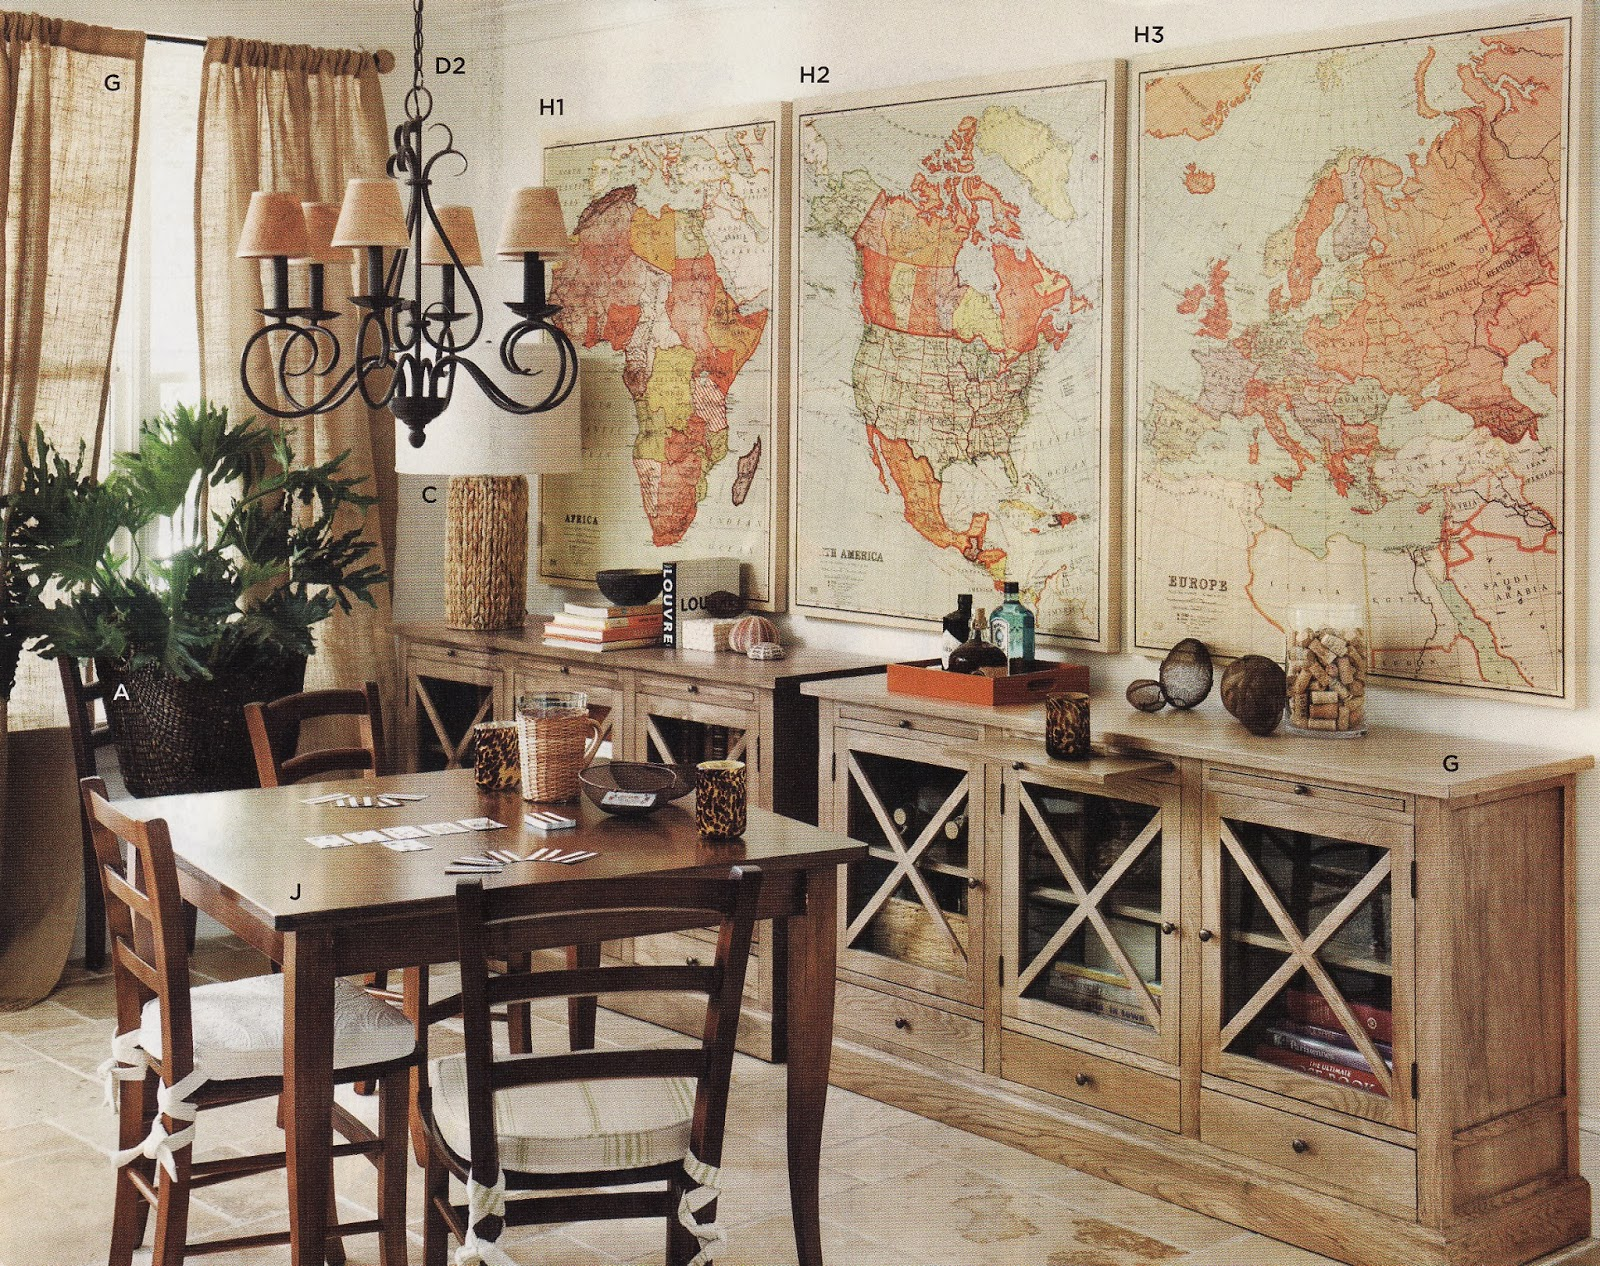 Creative juices decor oh for the love of maps home decor ideas - Level a house decor ...